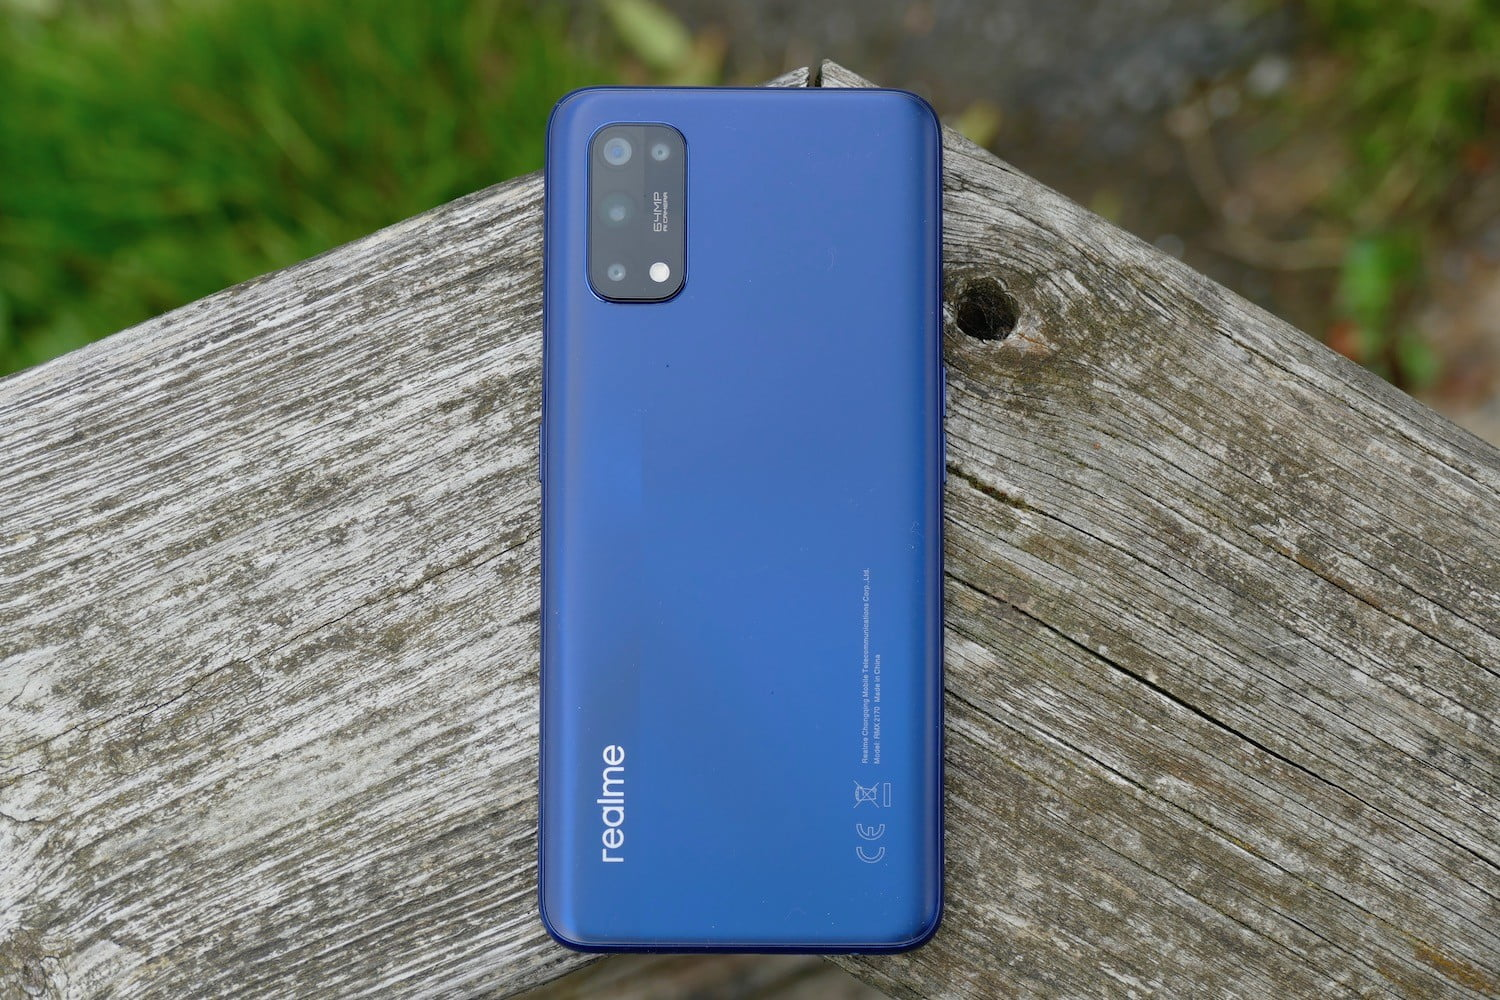 realme 7 pro is quite a powerful phone